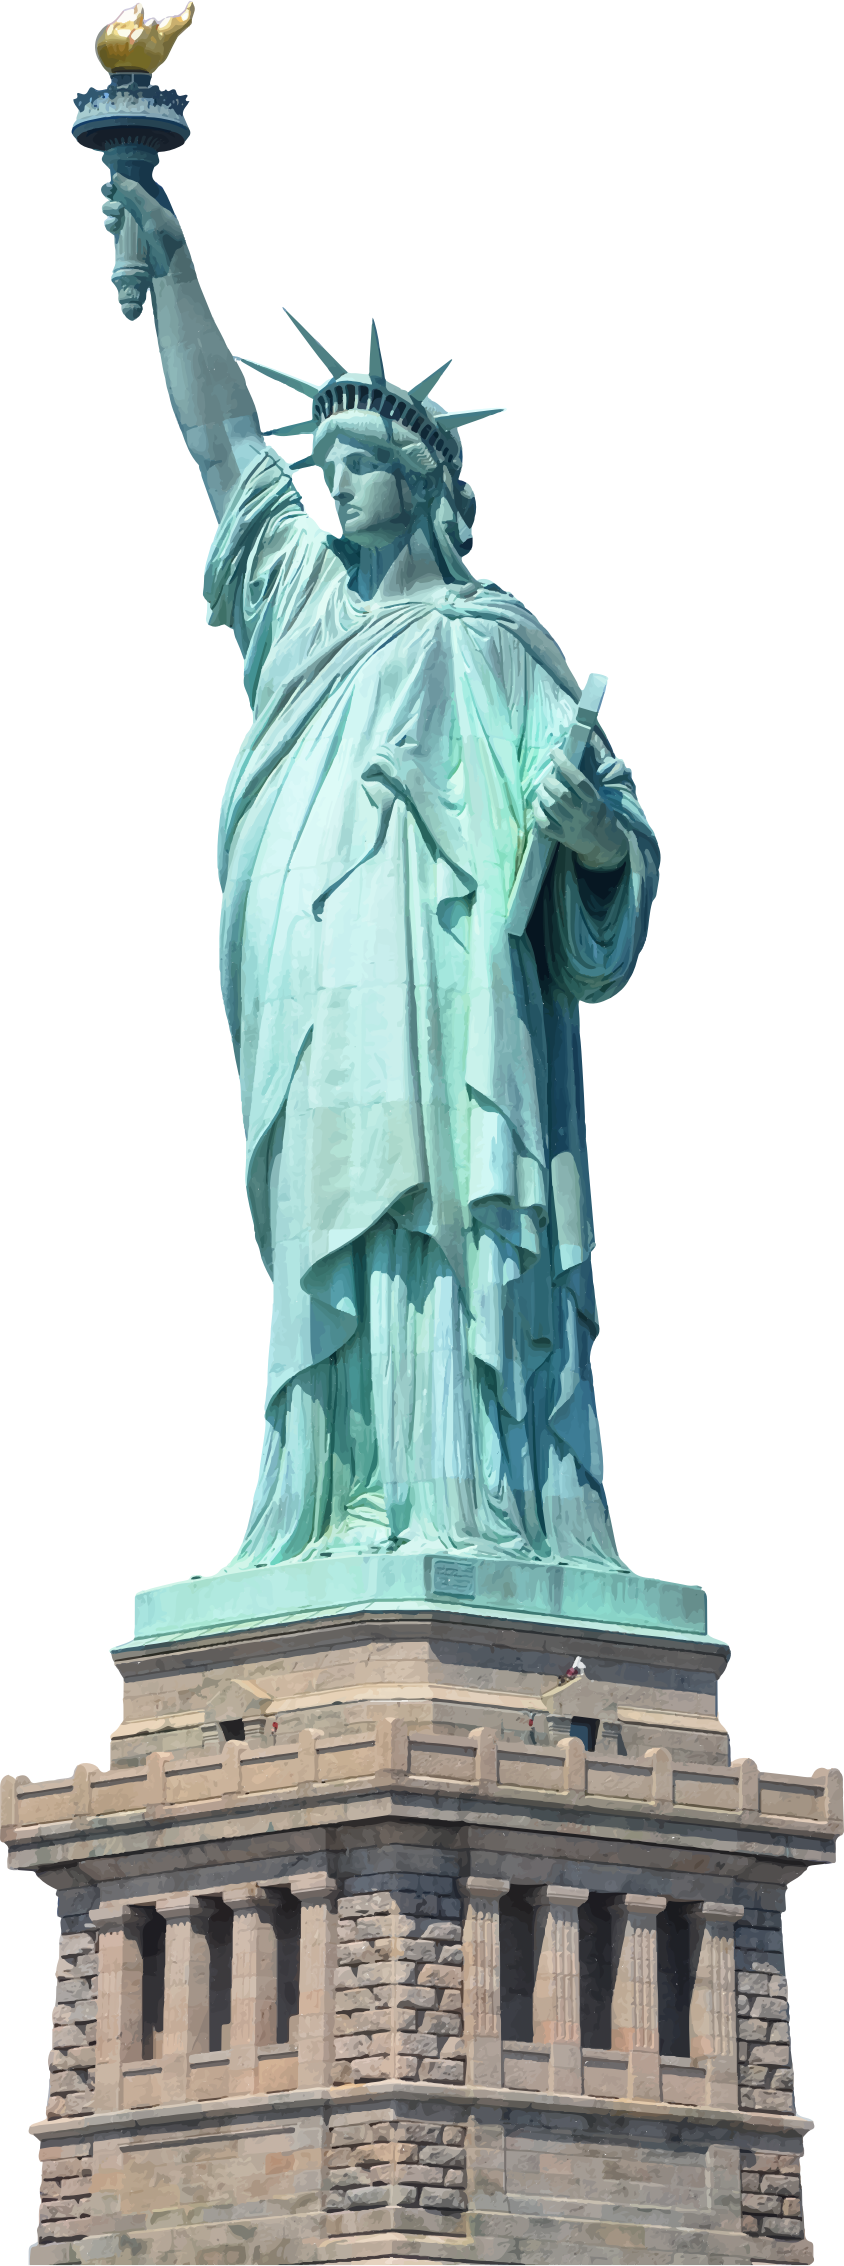 Statue Of Liberty PNG Images Transparent Free Download.